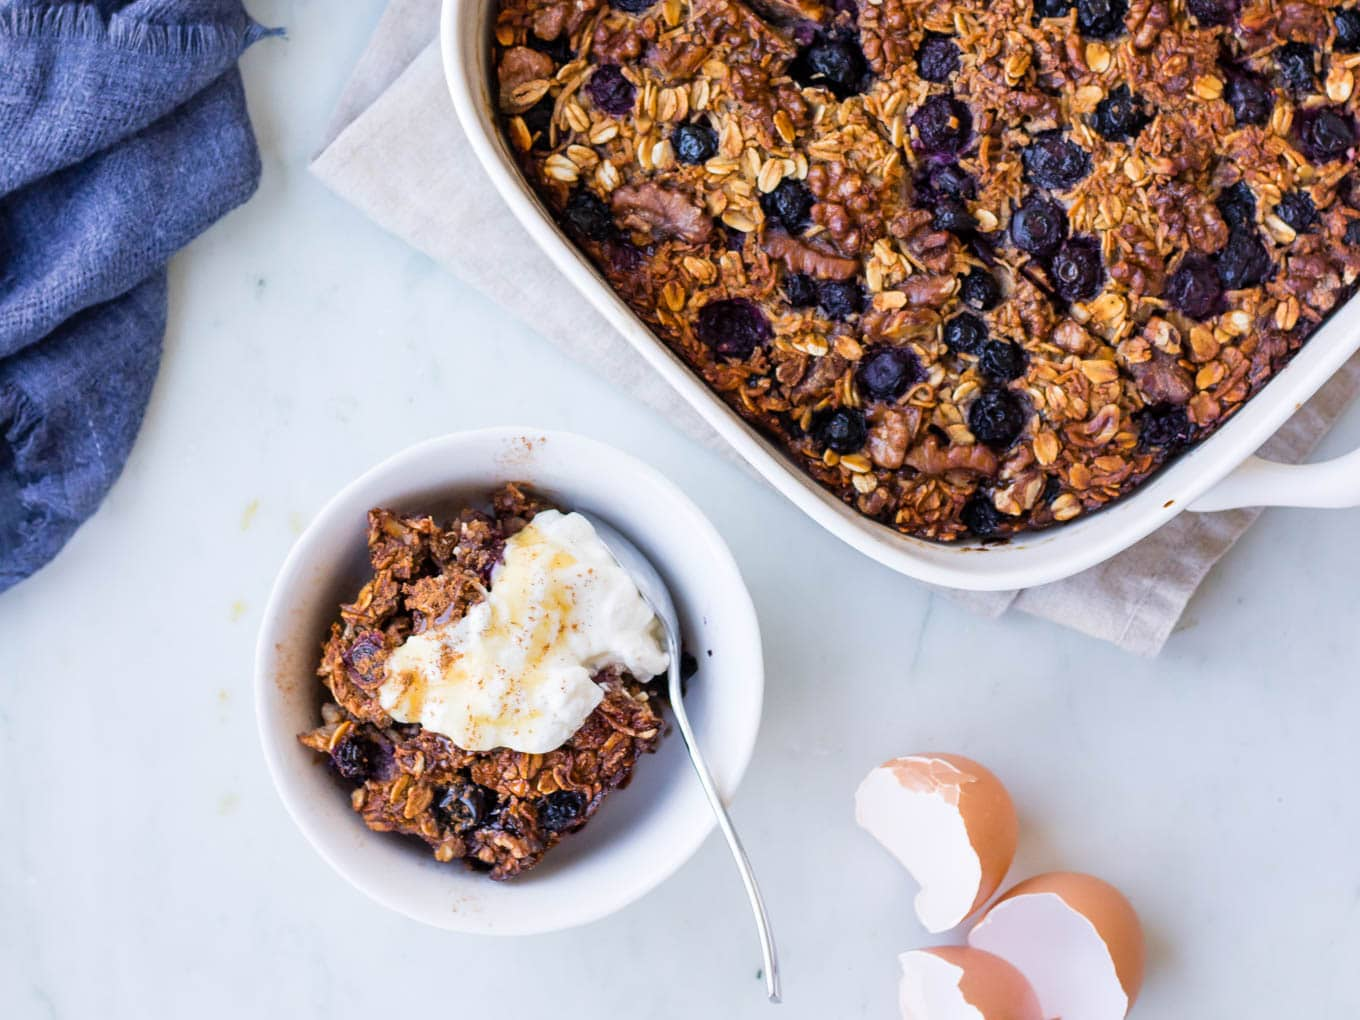 Coconut Blueberry Baked Oats